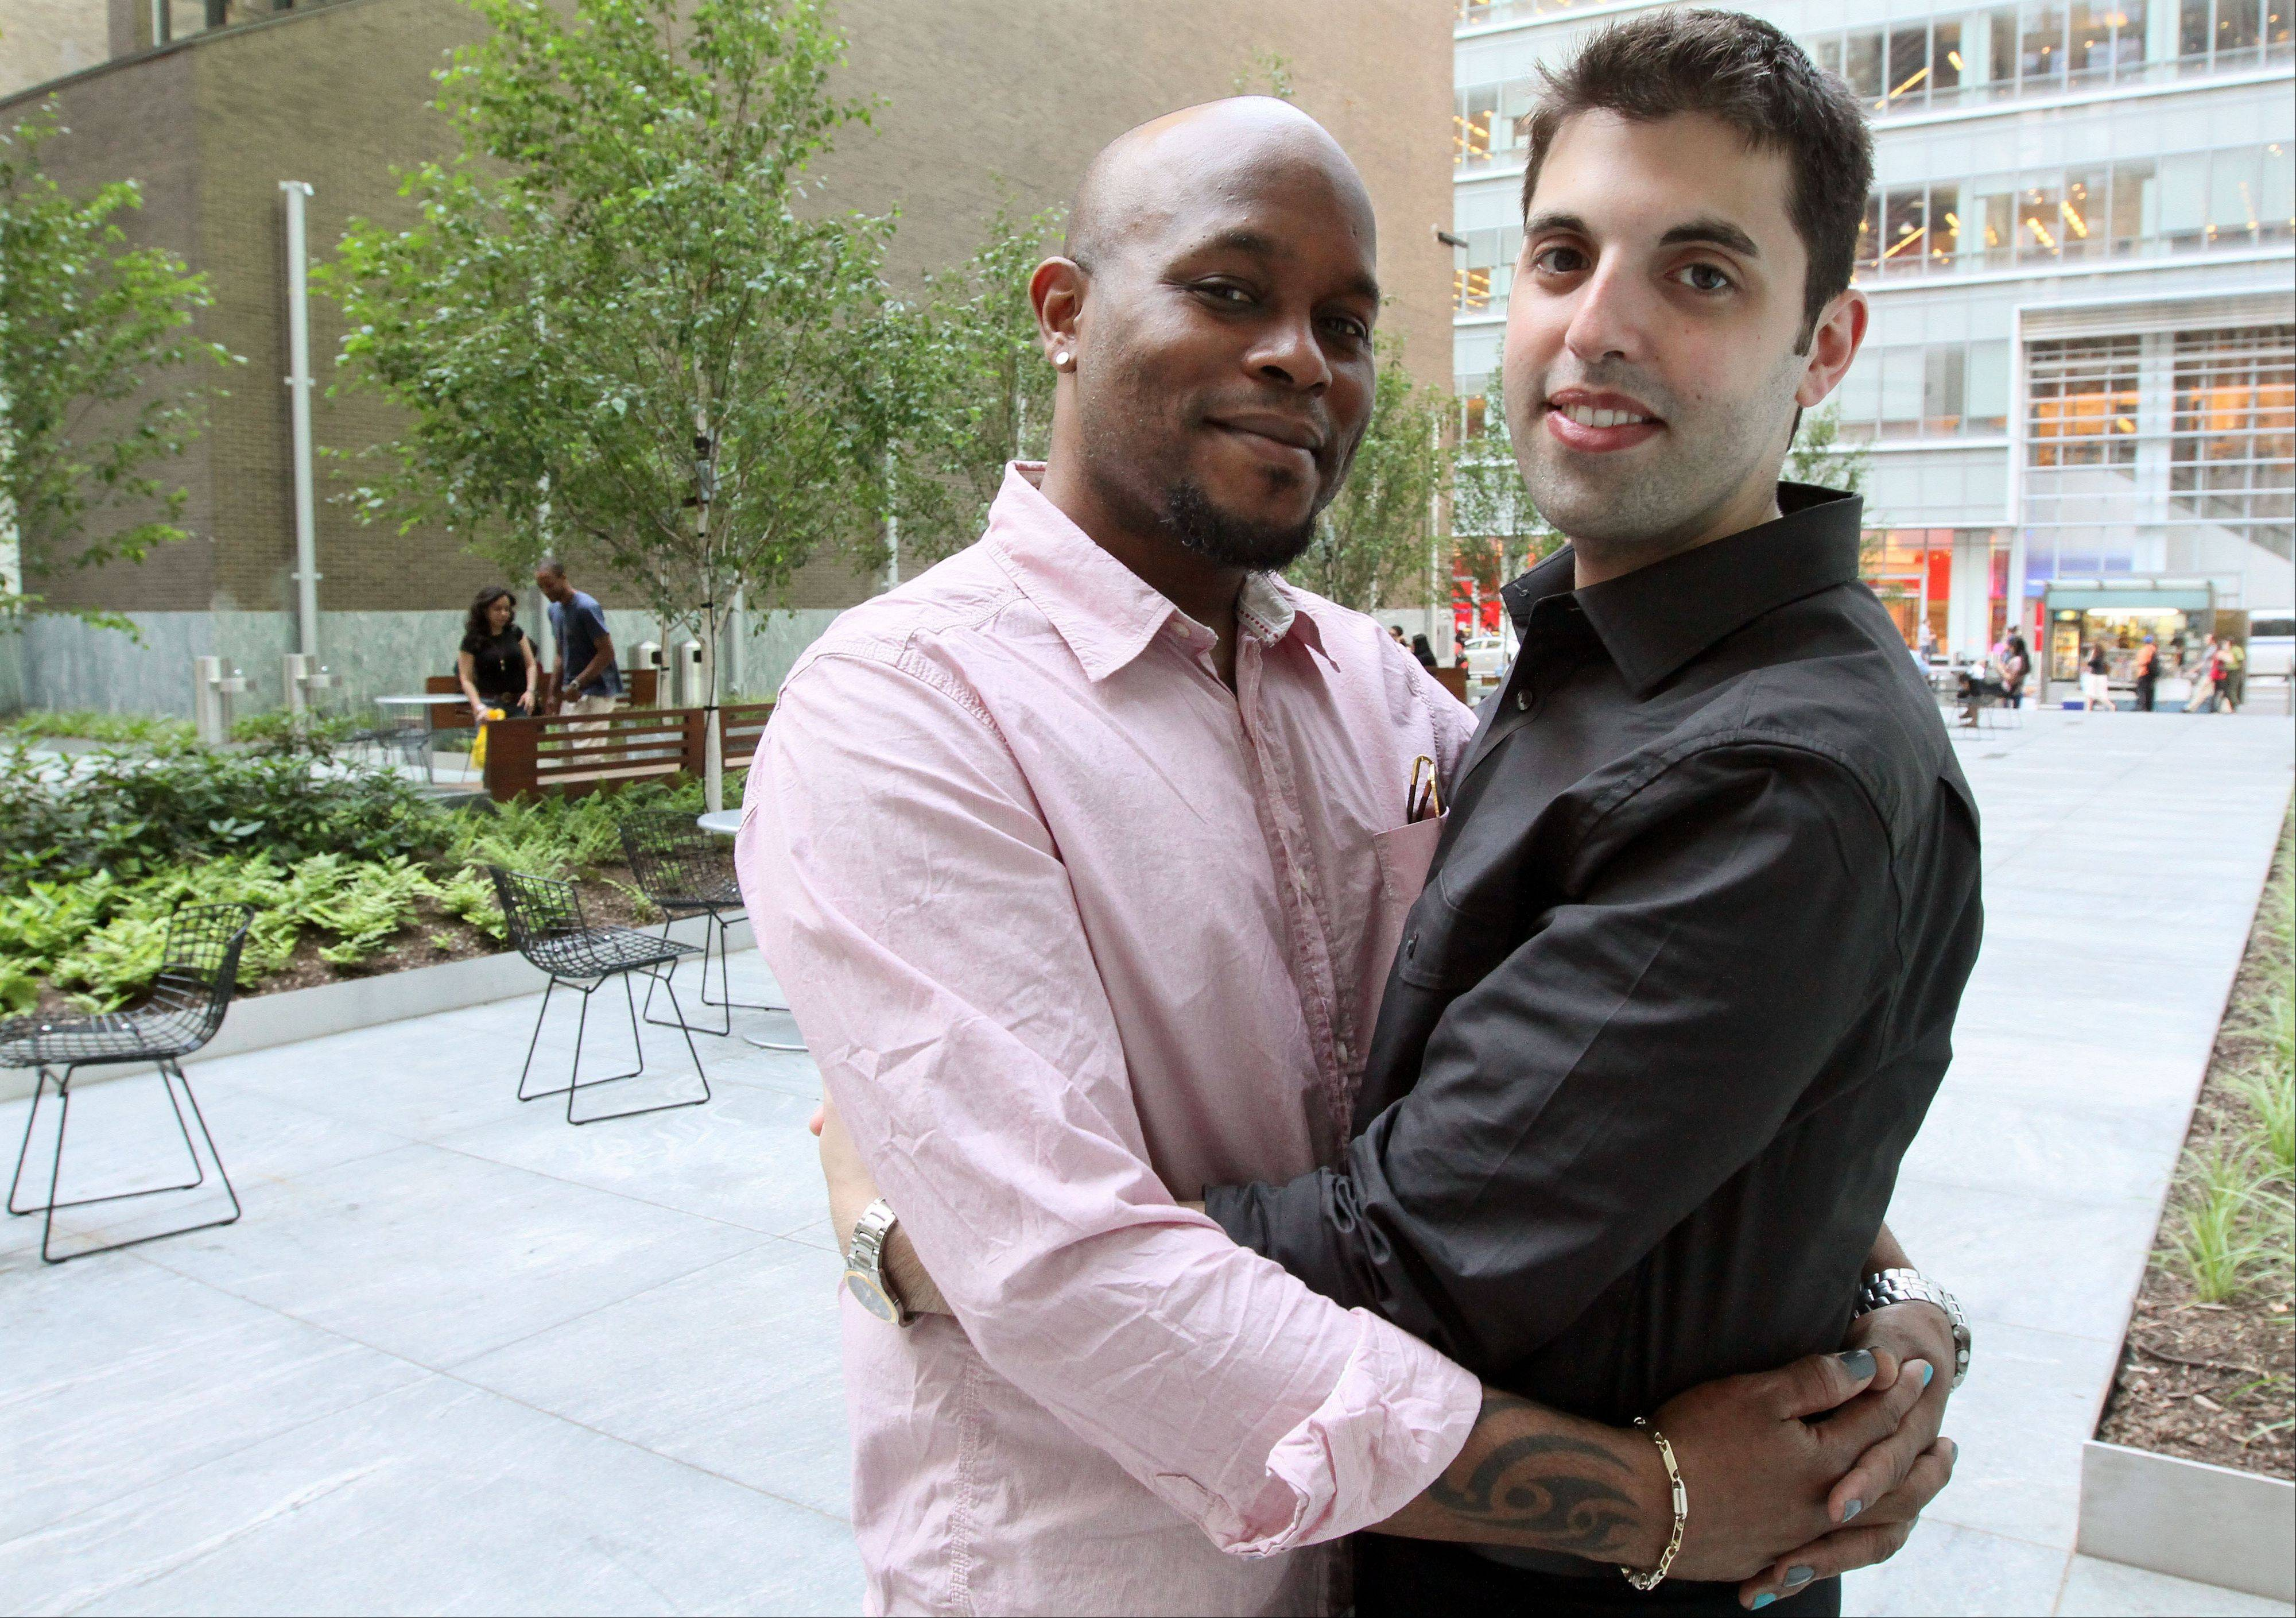 Darren Major, left, and his husband Andrew Troup live in New York and were legally wed in Canada in 2008. As gay marriage becomes legal in New York, companies and individuals are wrestling with changes to their fin